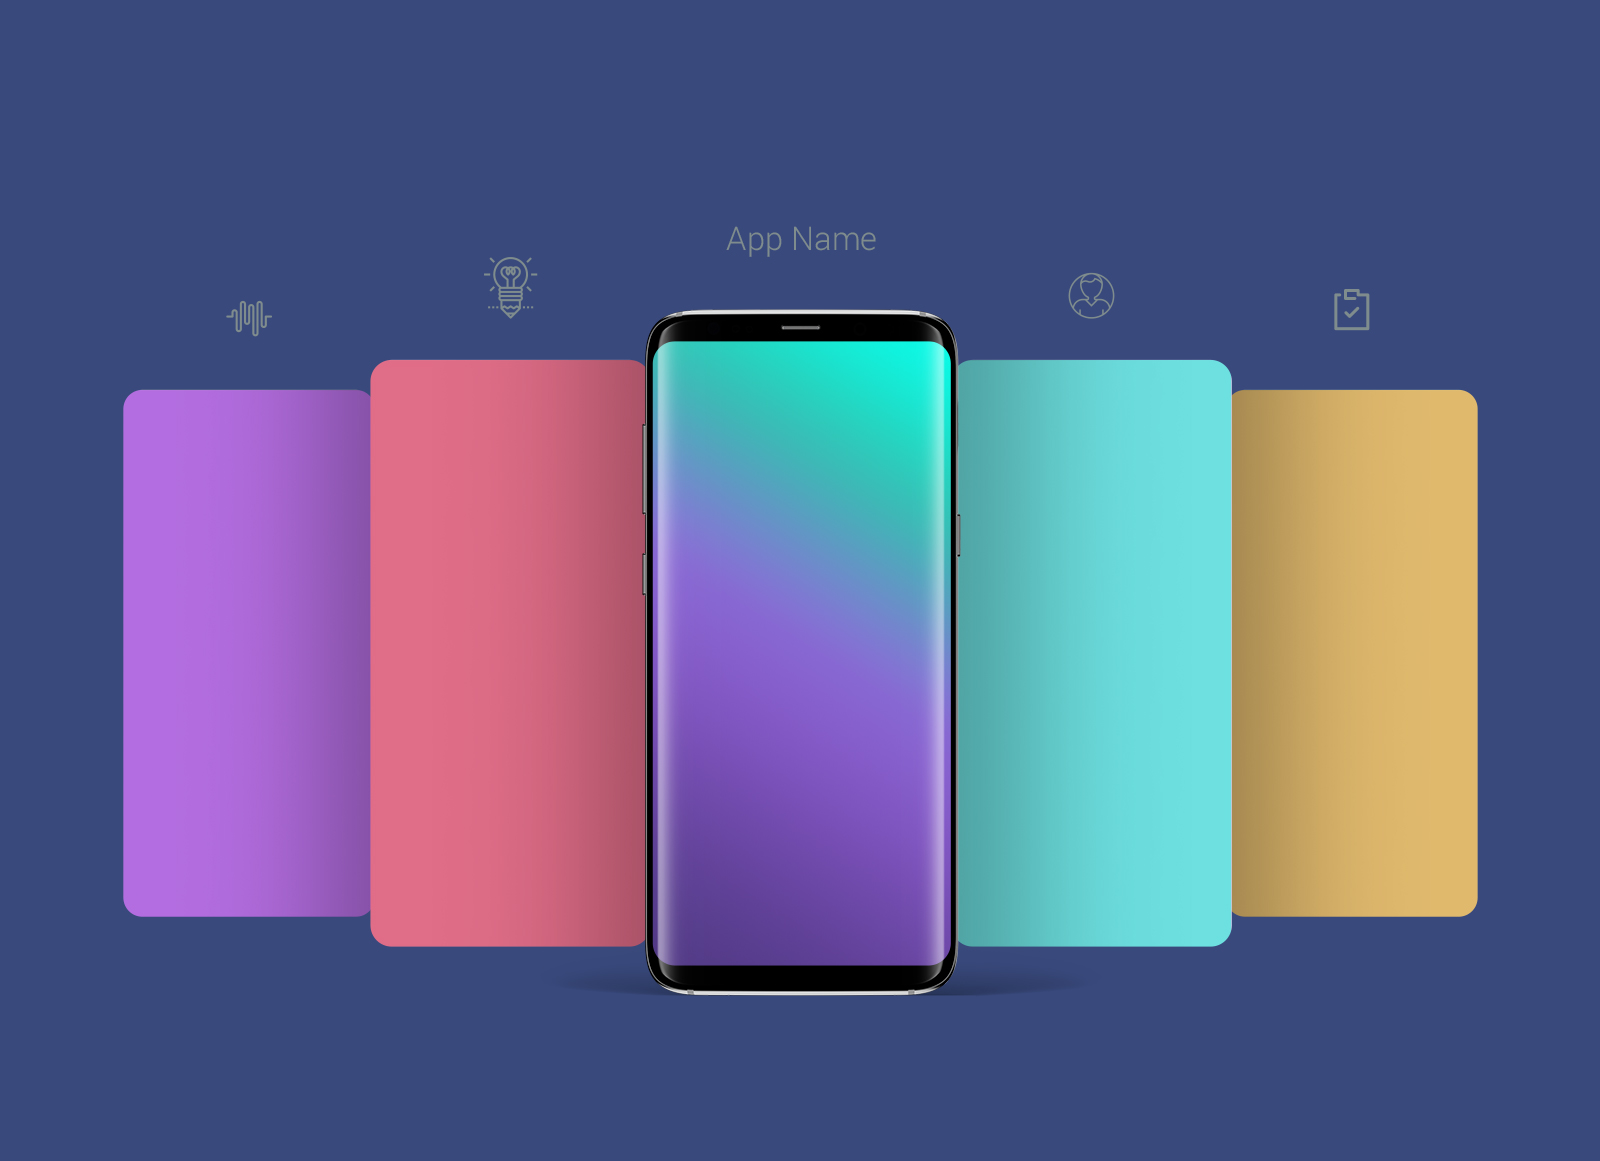 Free-Samsung-Galaxy-S8-Plus-App-Screen-Mockup-PSD